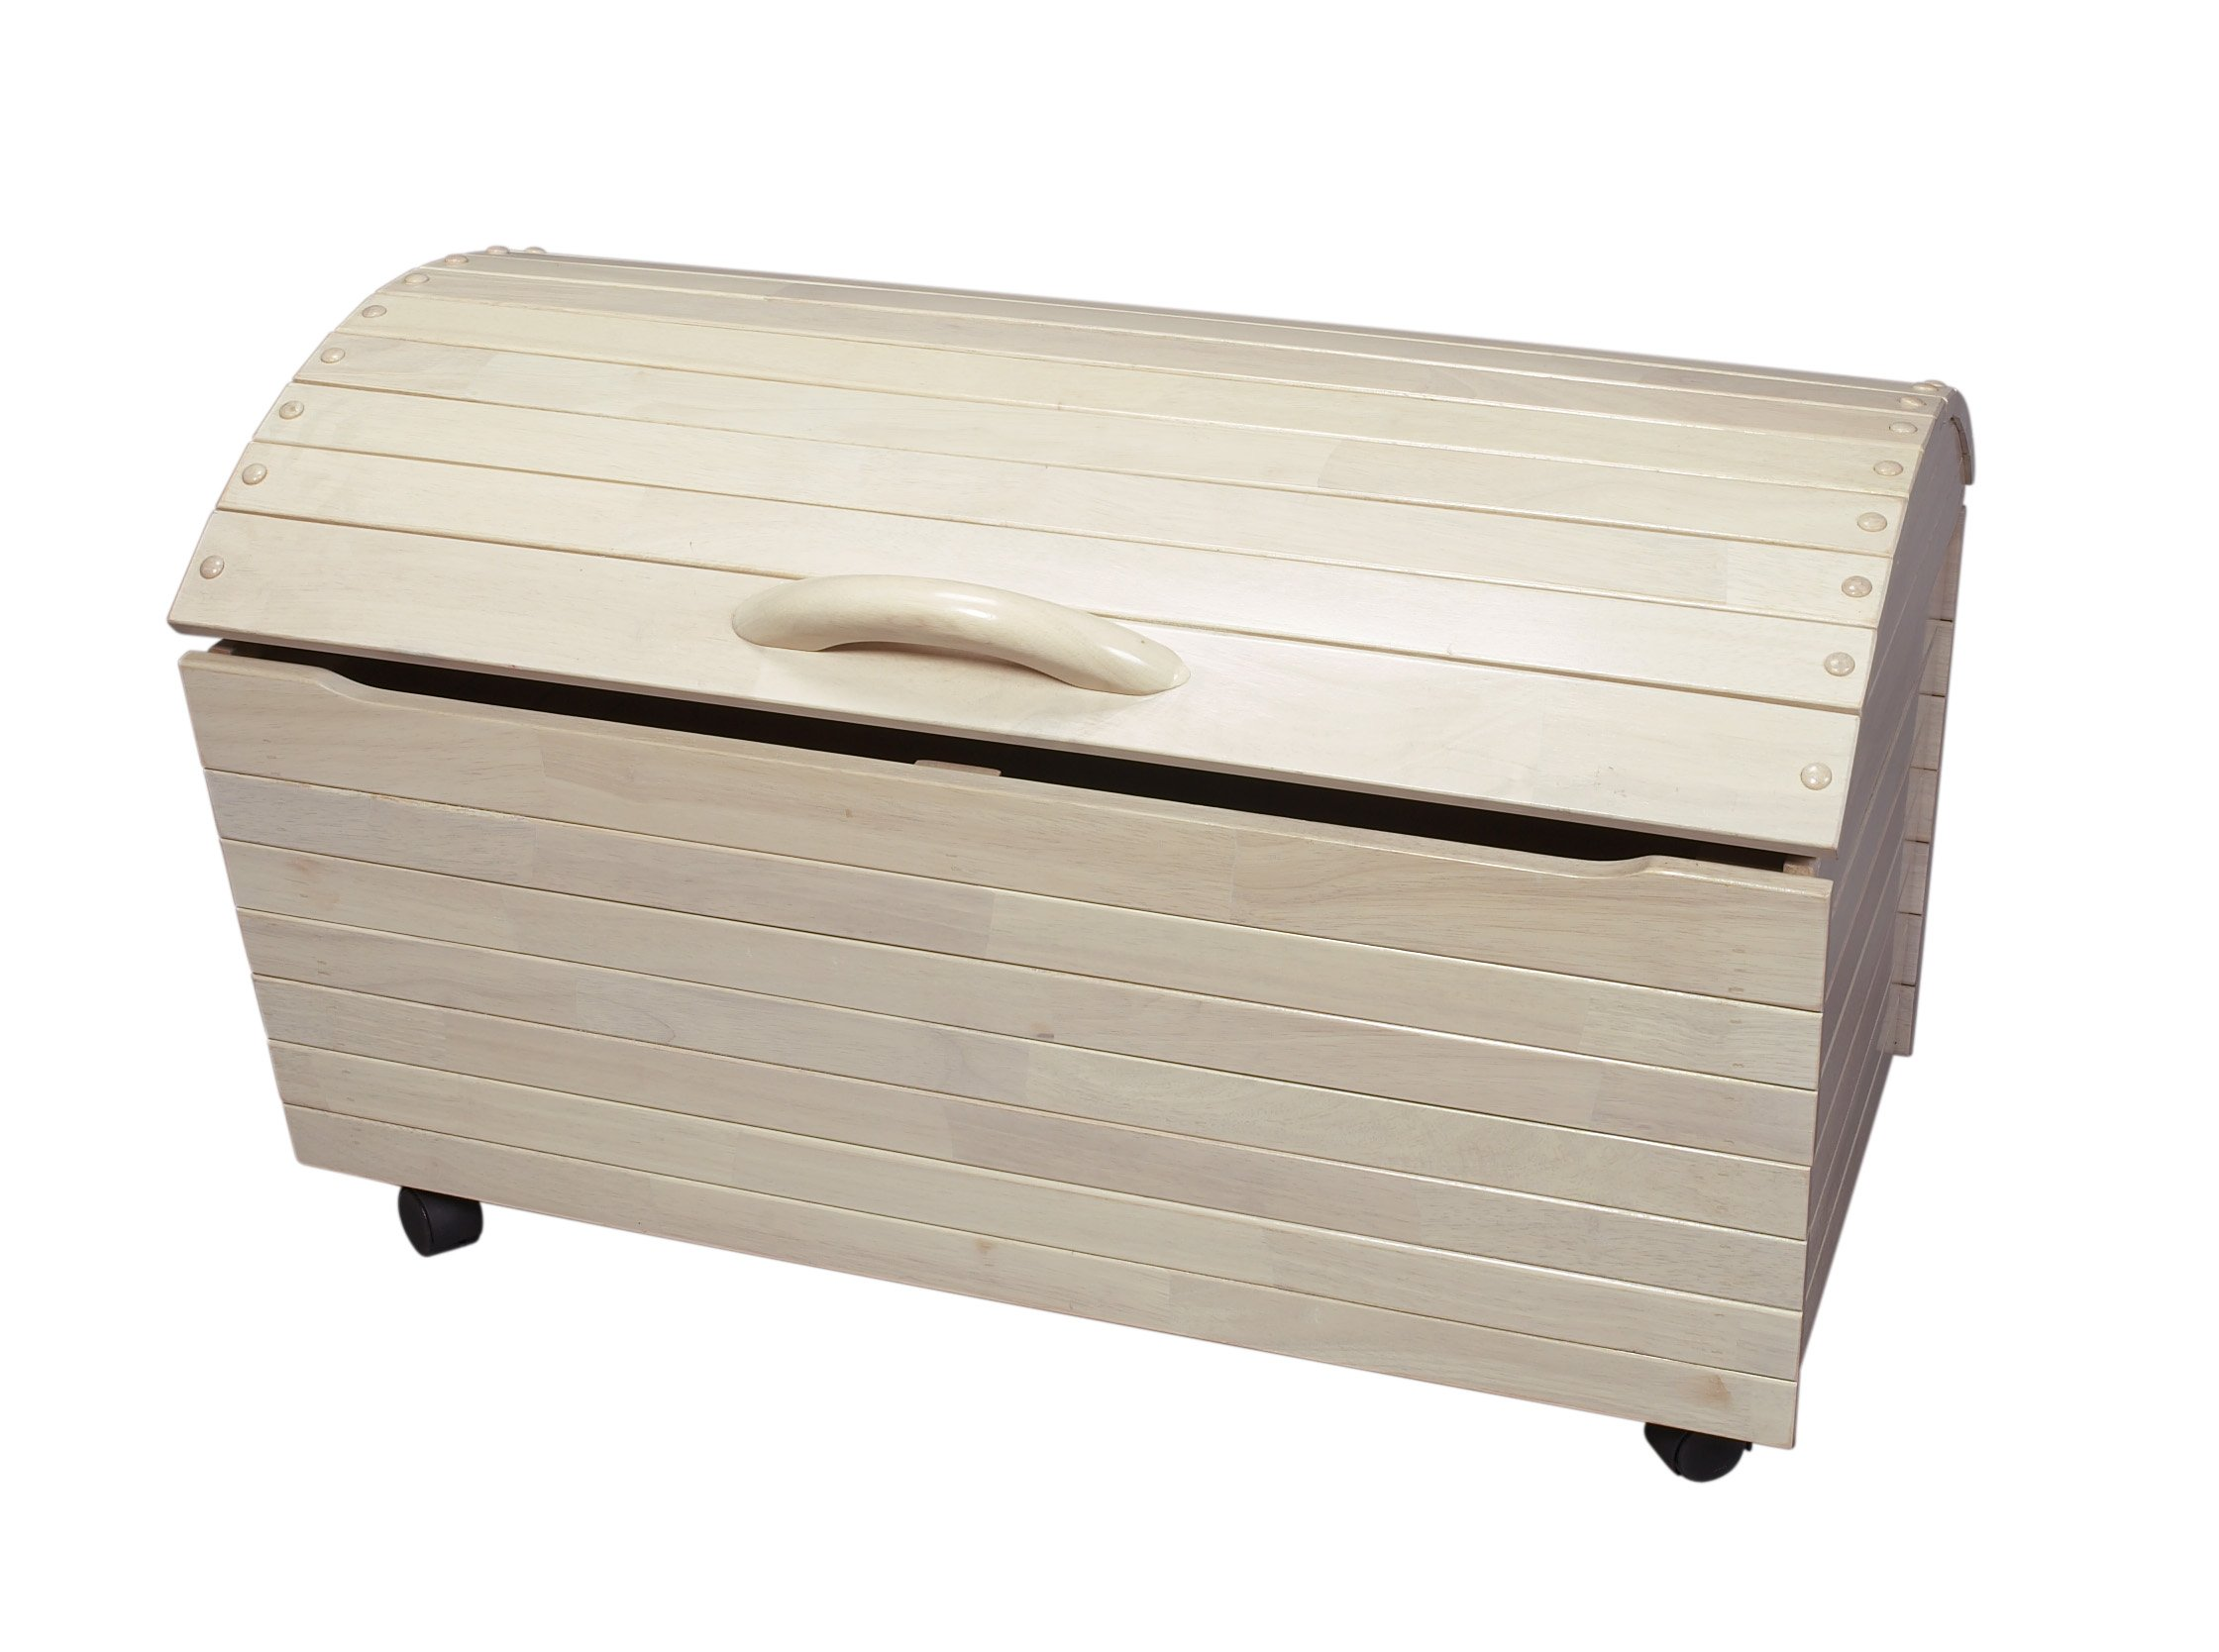 Gift Mark's Deluxe Treasure Chest, White Wash by Gift Mark